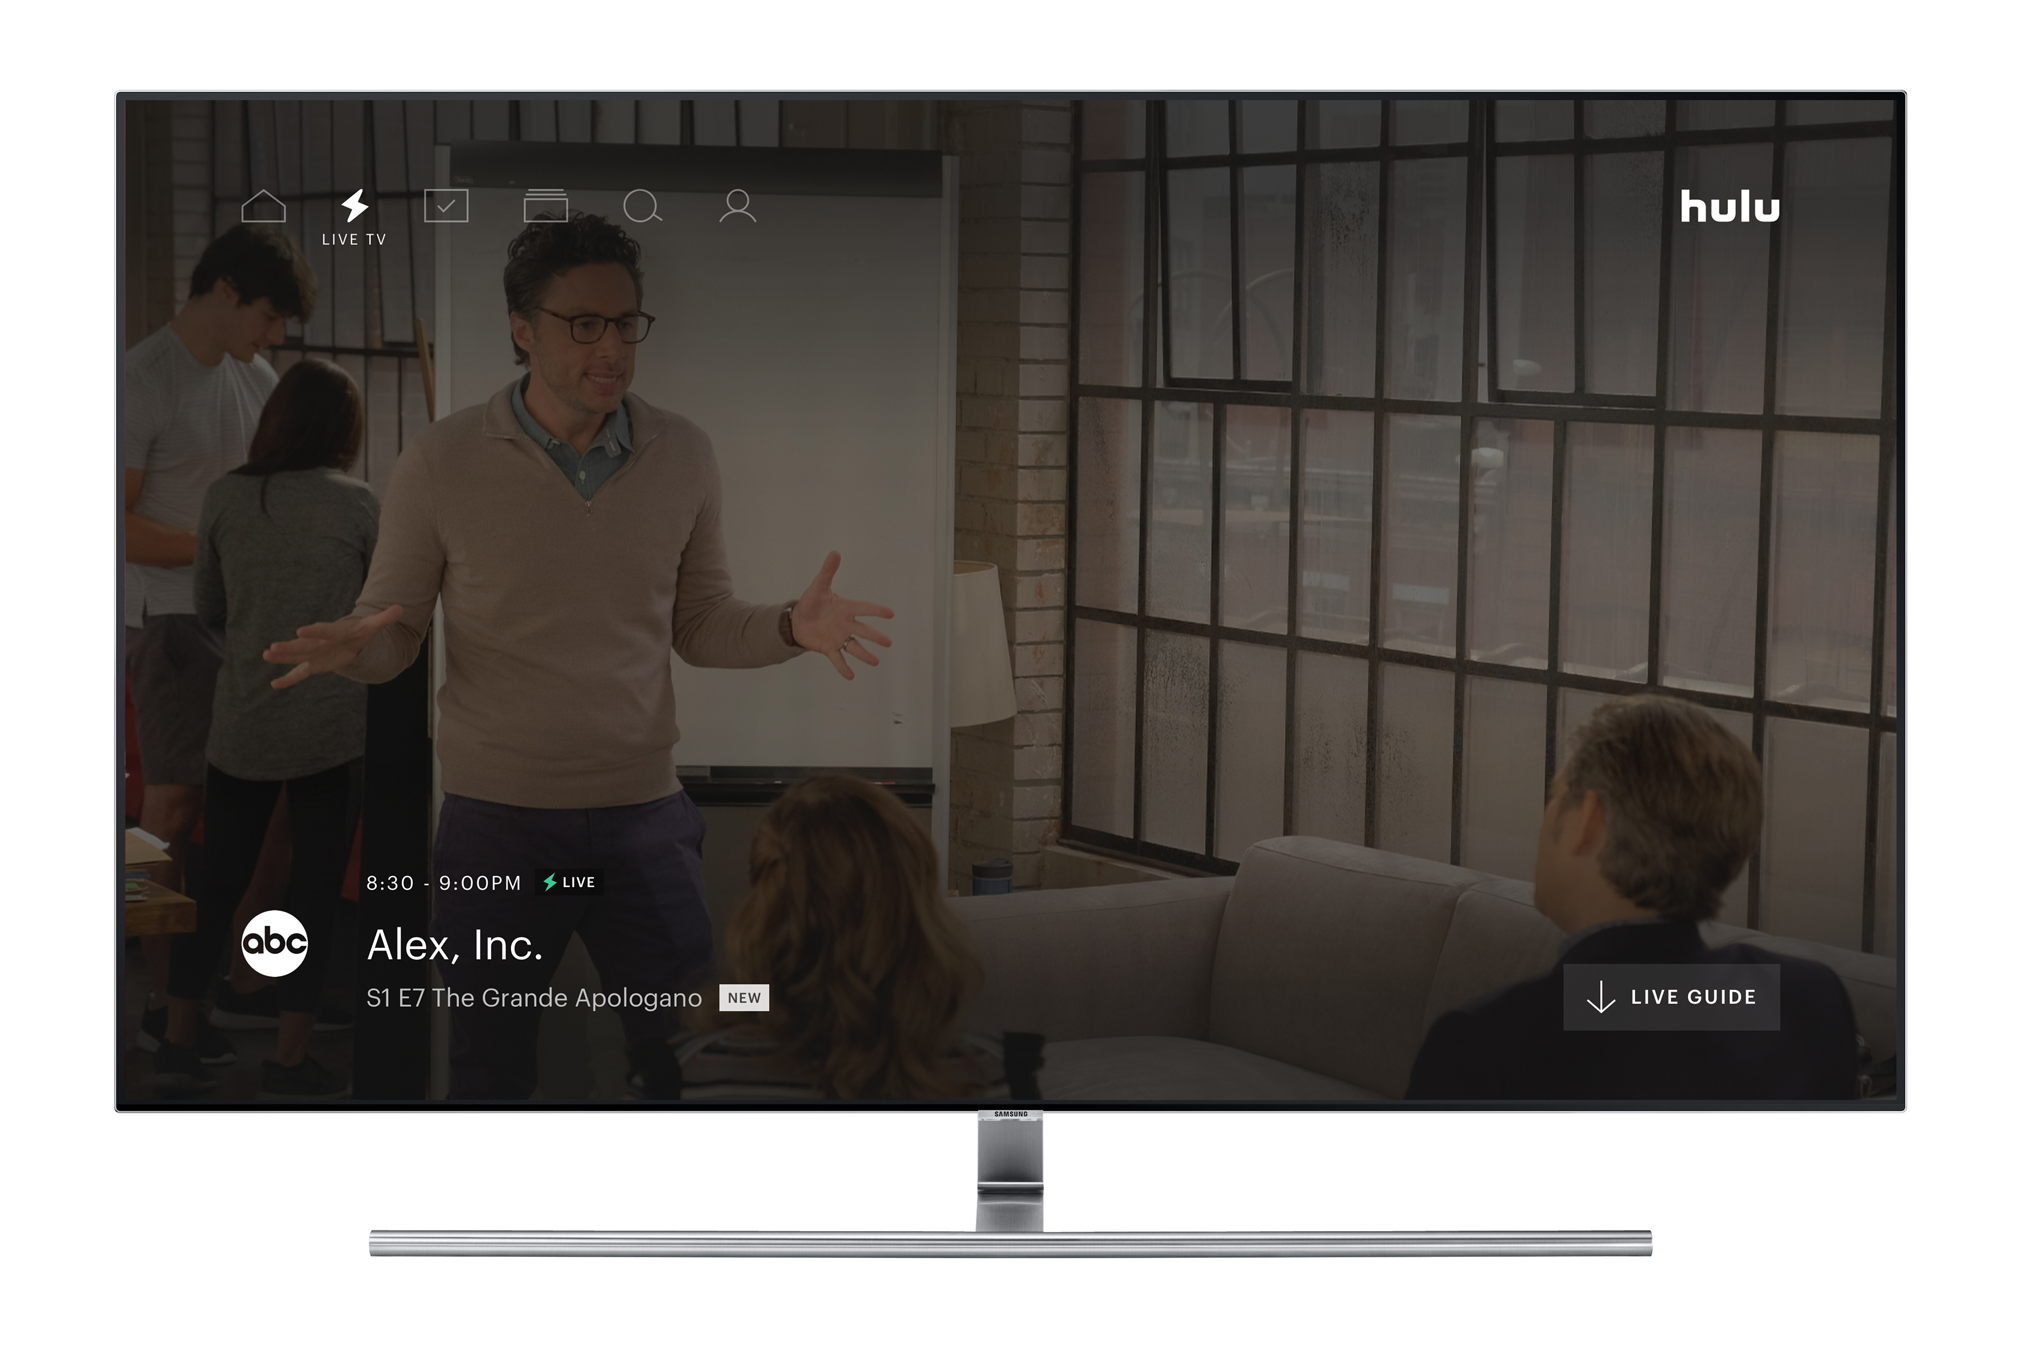 Hulu adds live TV guide for Amazon Fire TV Apple TV Xbox